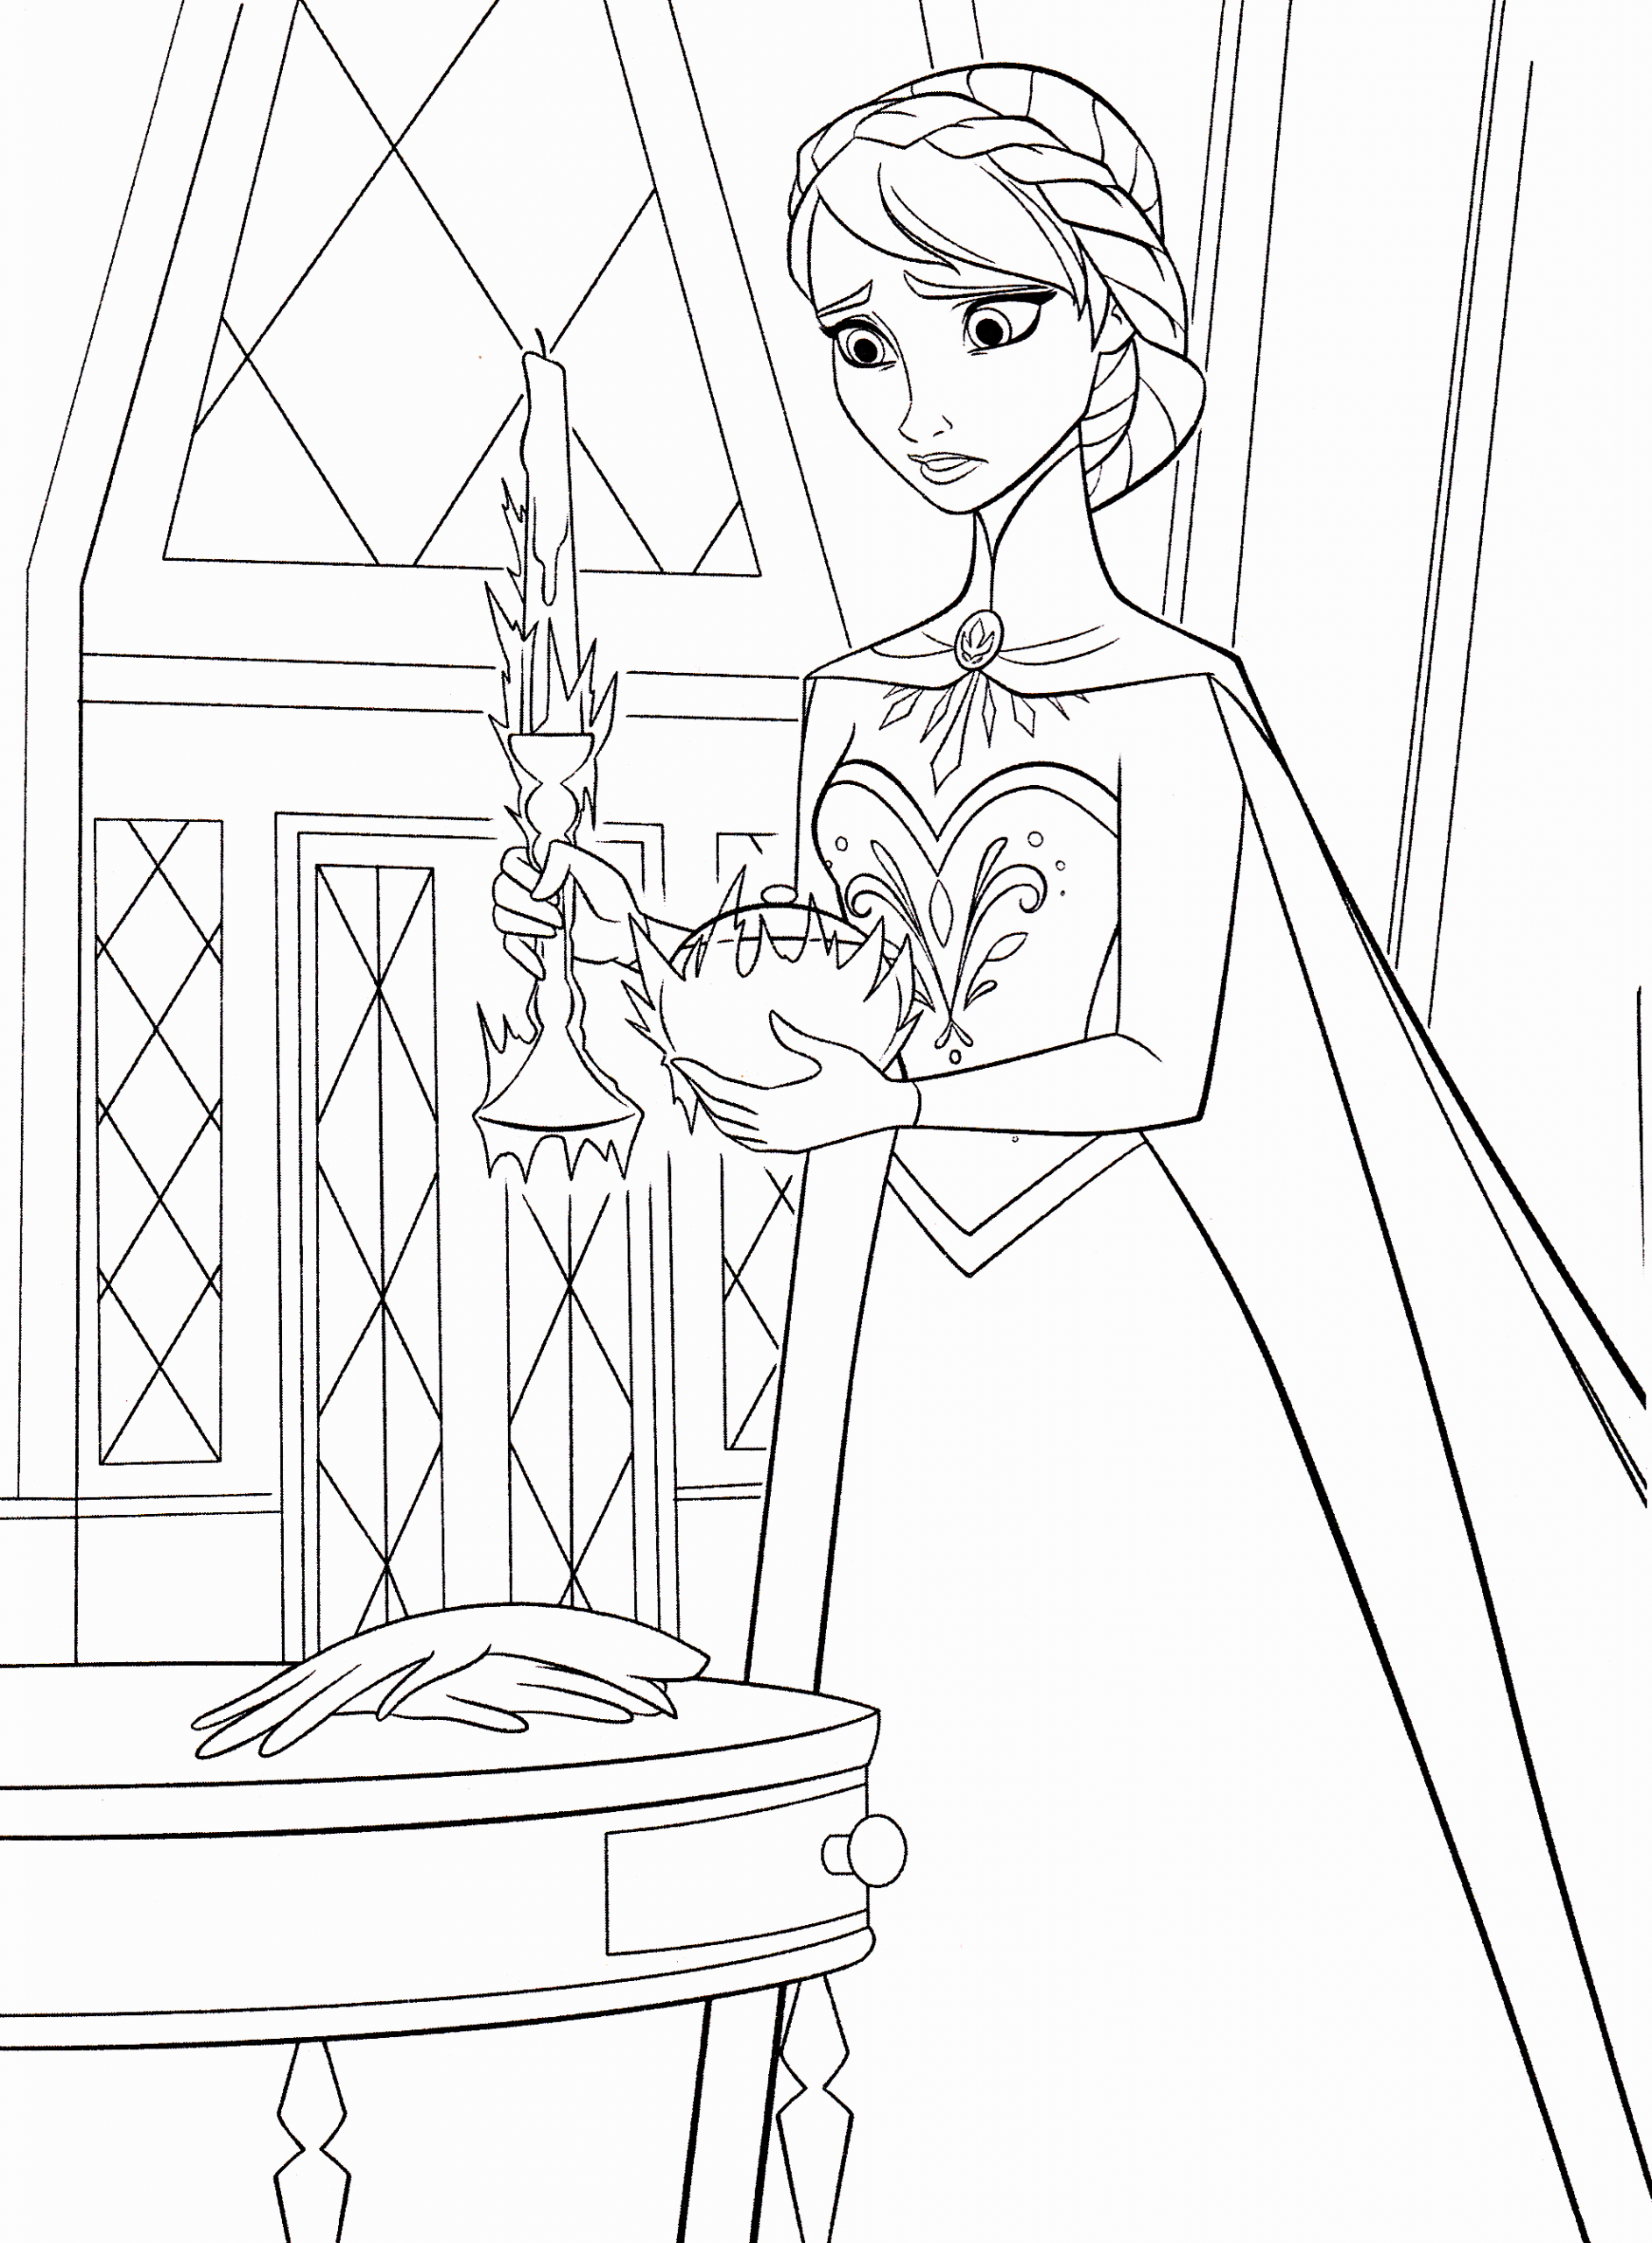 Disney Elsa Coloring Page Awesome Walt Disney Coloring Pages Queen Elsa Walt Disney In 2020 Disney Coloring Pages Elsa Coloring Pages Disney Coloring Pages Printables